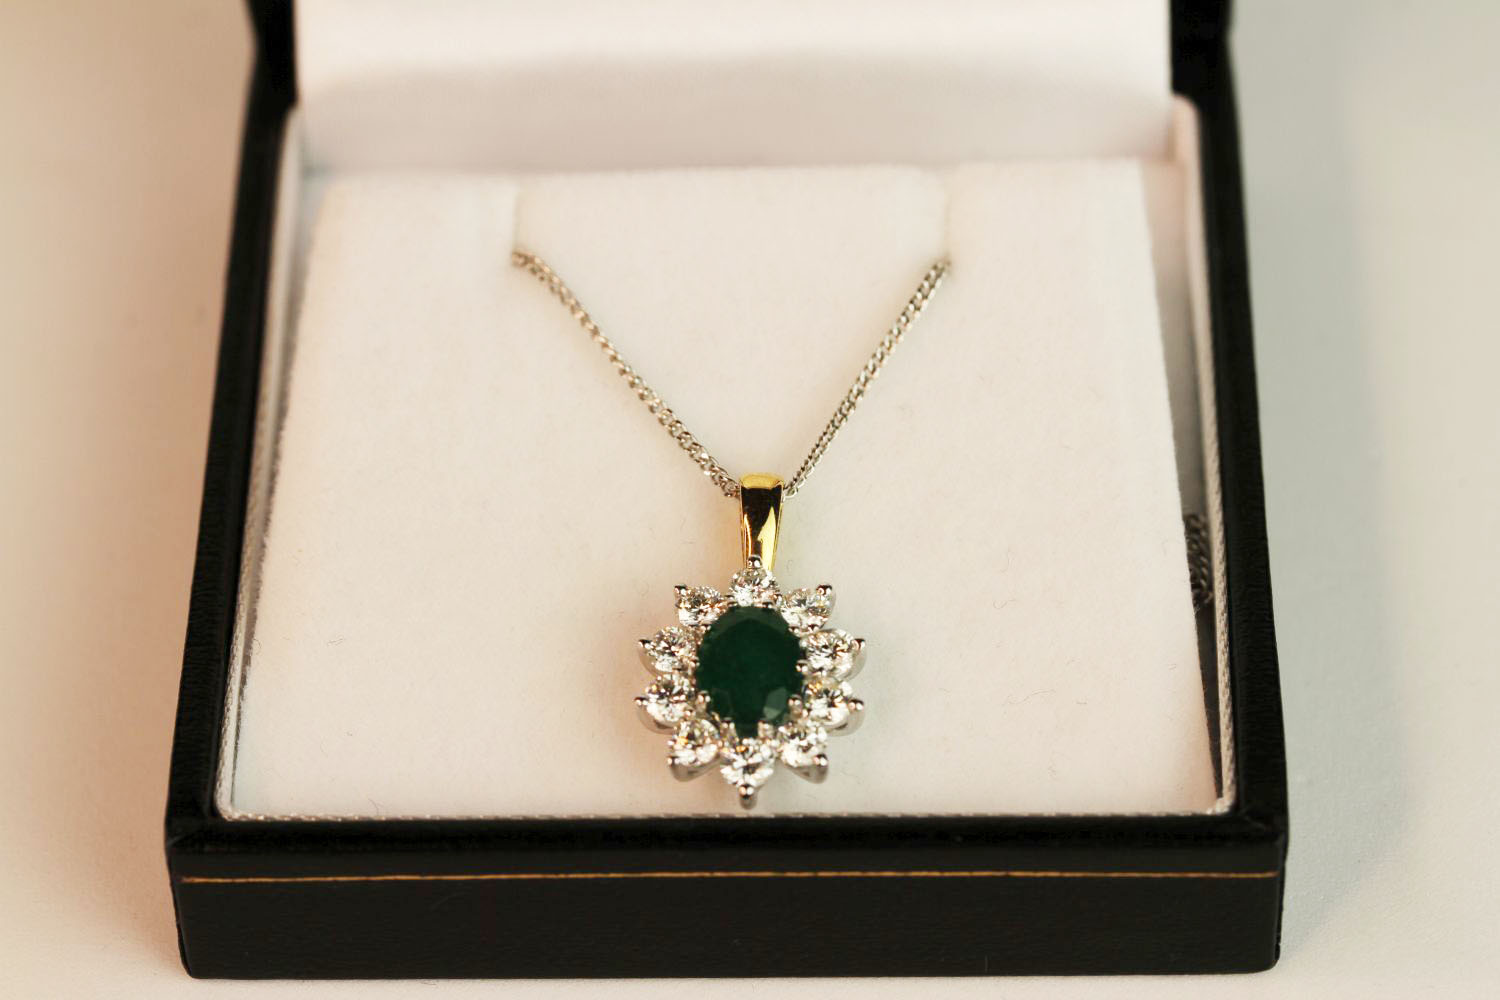 18ct white and yellow gold oval emerald and diamond cluster pendant on a silver chain, boxed. - Image 3 of 4